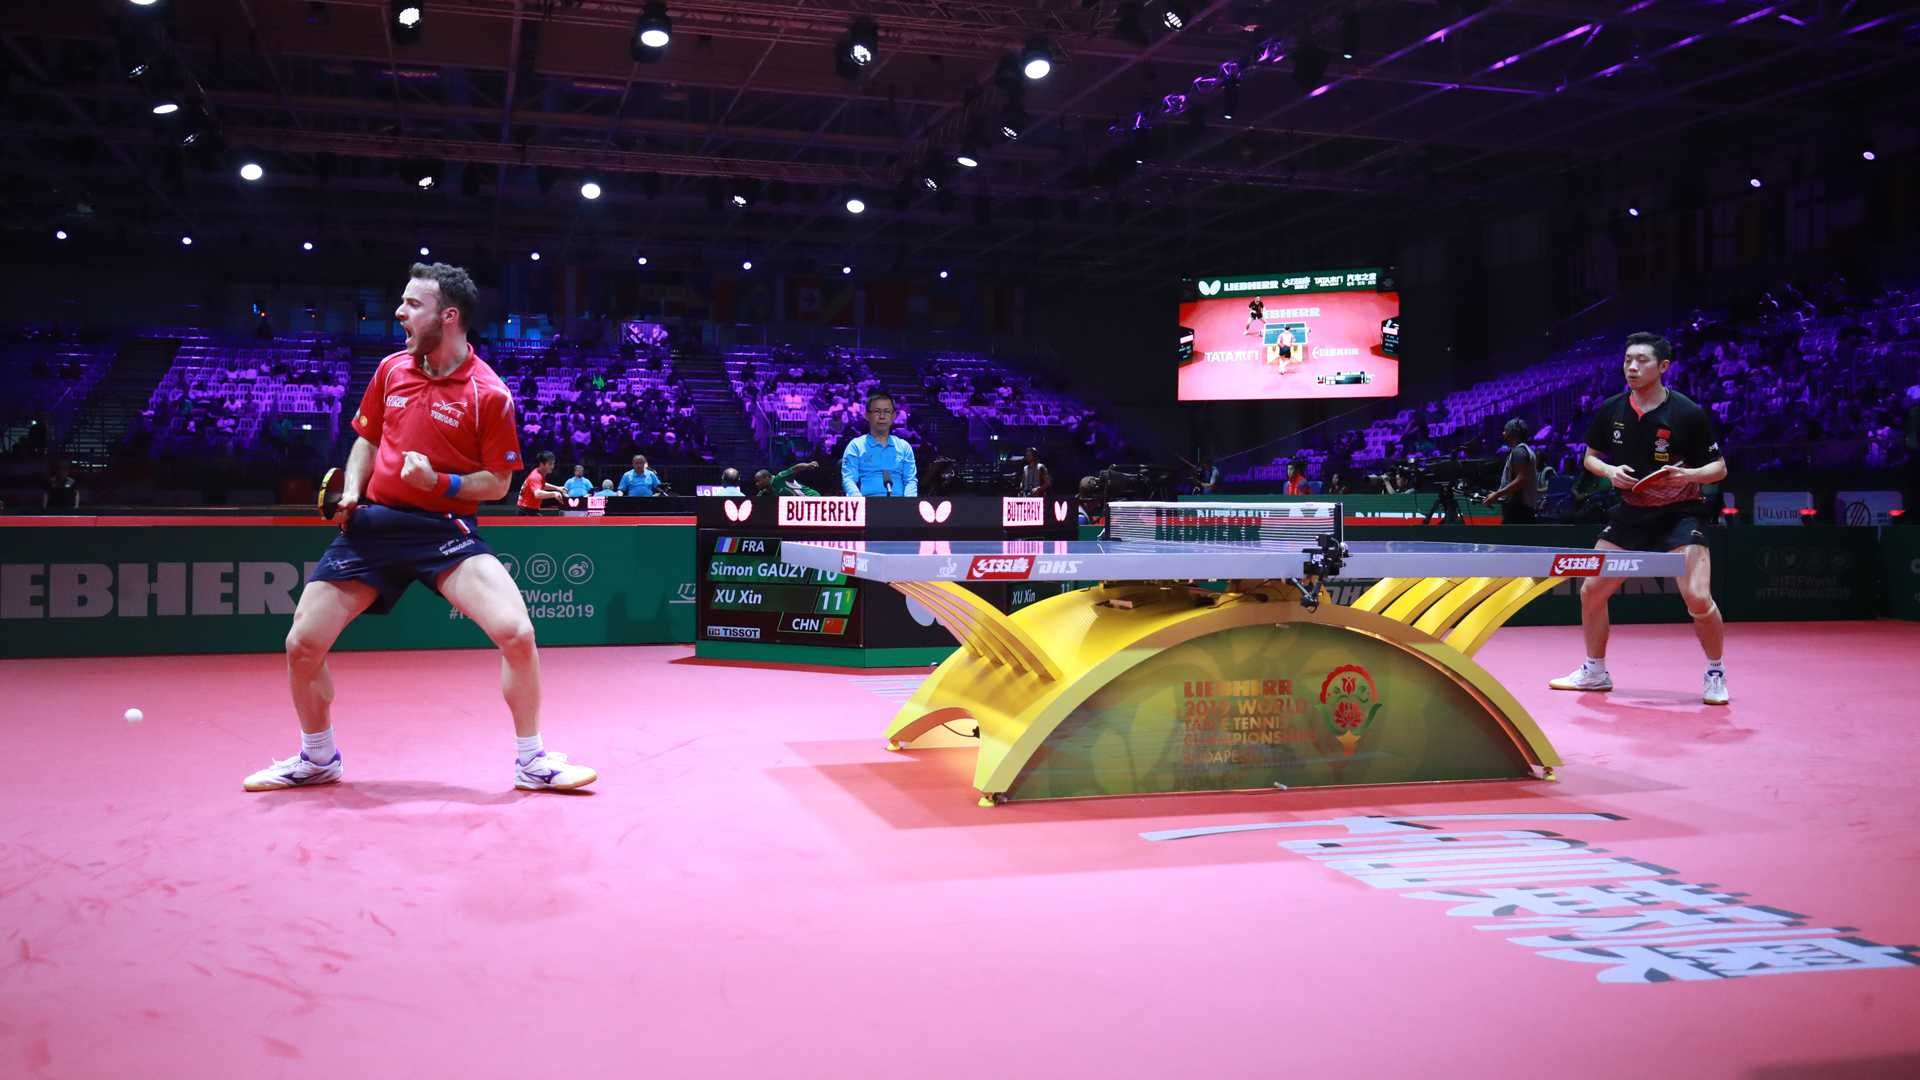 April 25 2019 Frenchman Simon Gauzy Causes A Huge Upset At The International Table Tennis Federation World Champion Sports Photograph Table Tennis Number Two